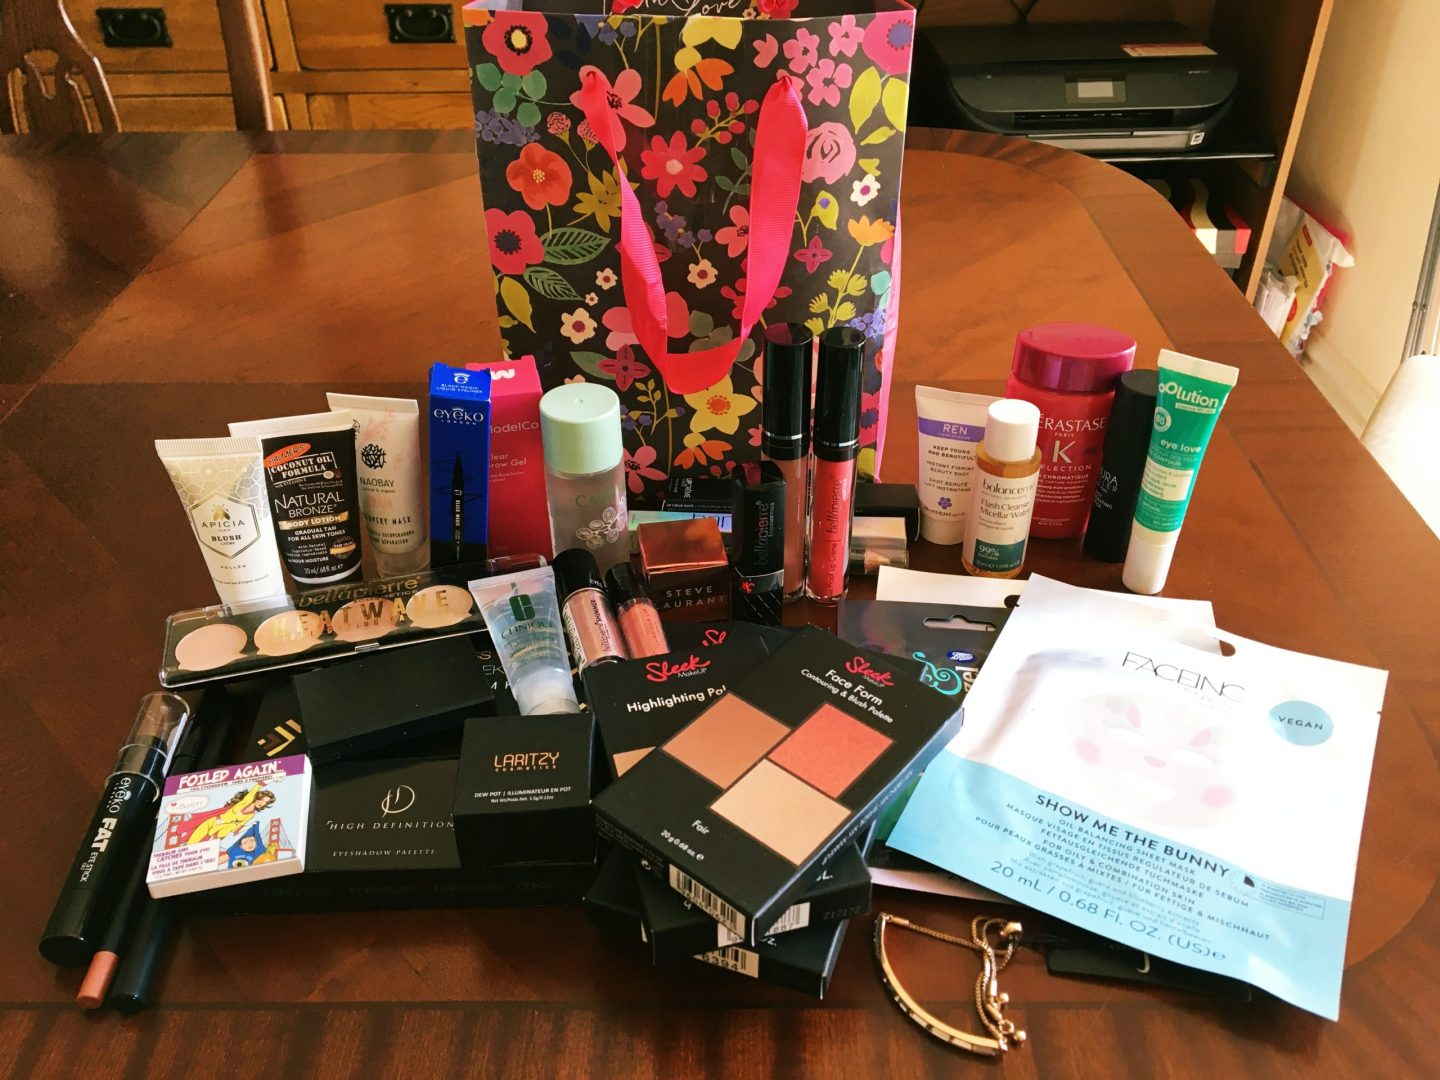 The giveaway prize in a flowery gift bag, with everything inside it laid out on my dining table. There's lot of stuff here, including face masks, eye-shadow, face products, hair conditioner.